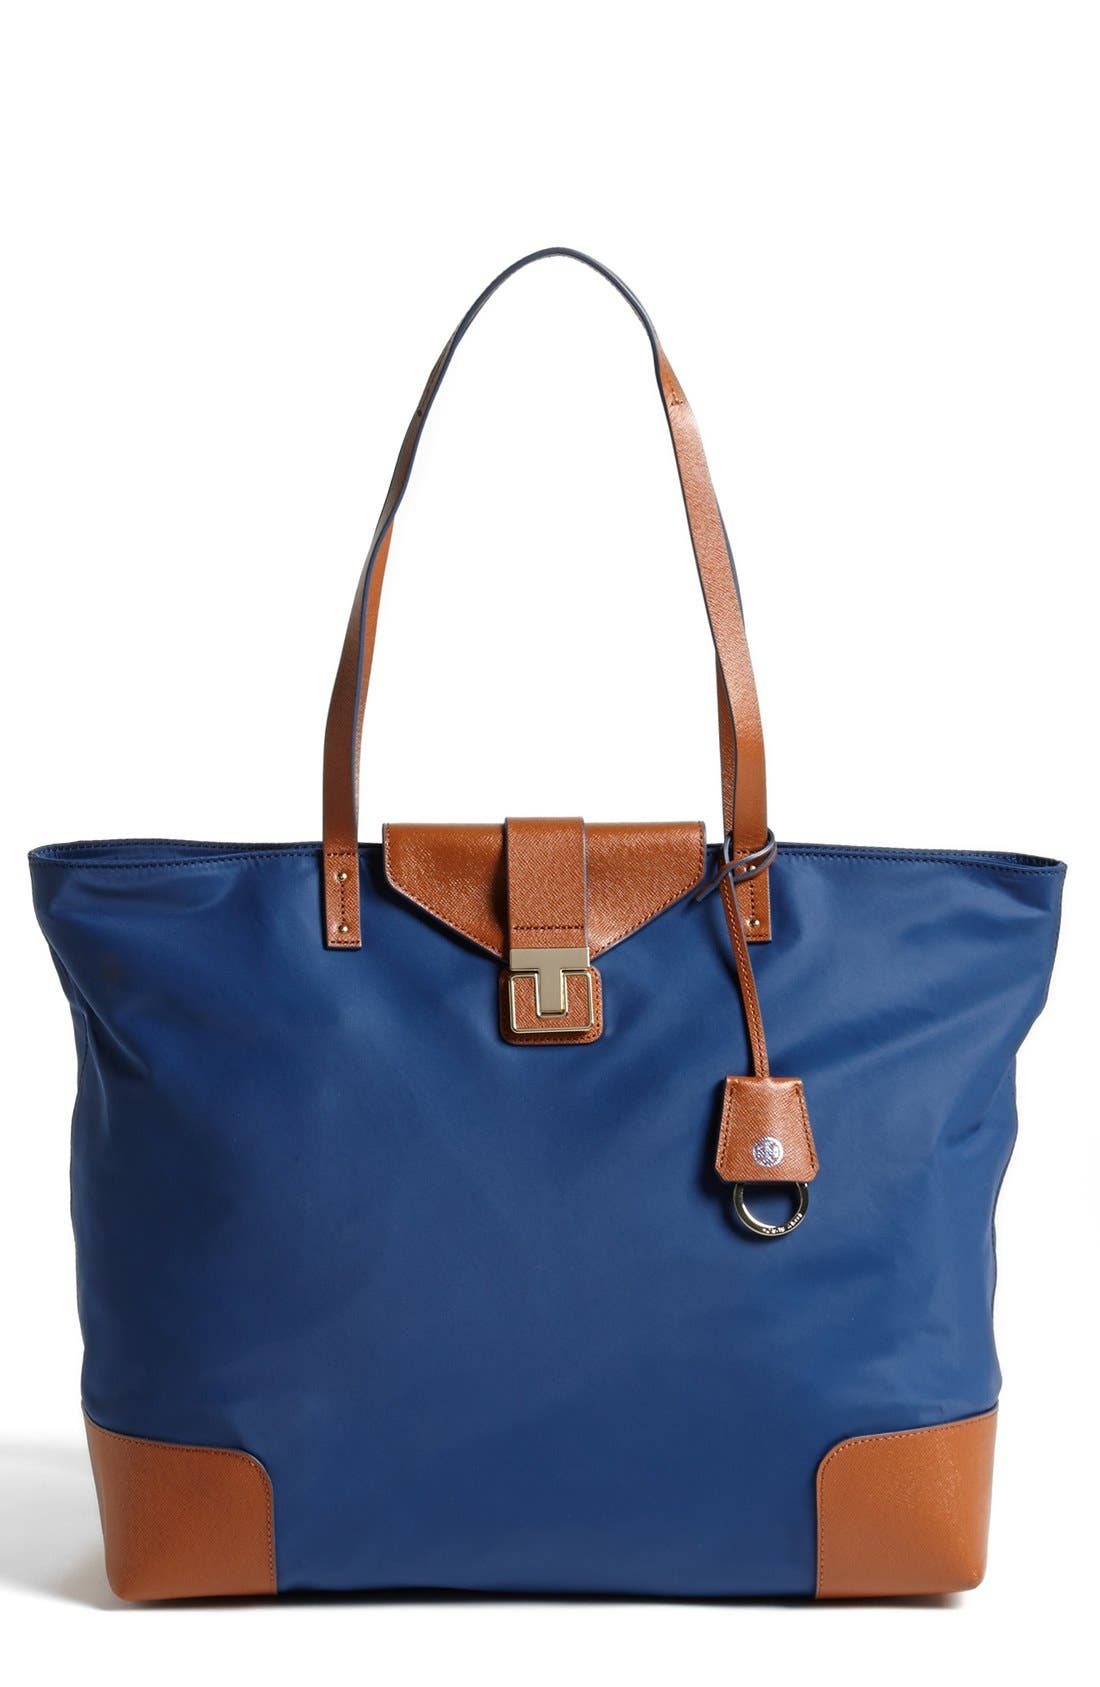 Alternate Image 1 Selected - Tory Burch 'Penn' Nylon Tote, Large